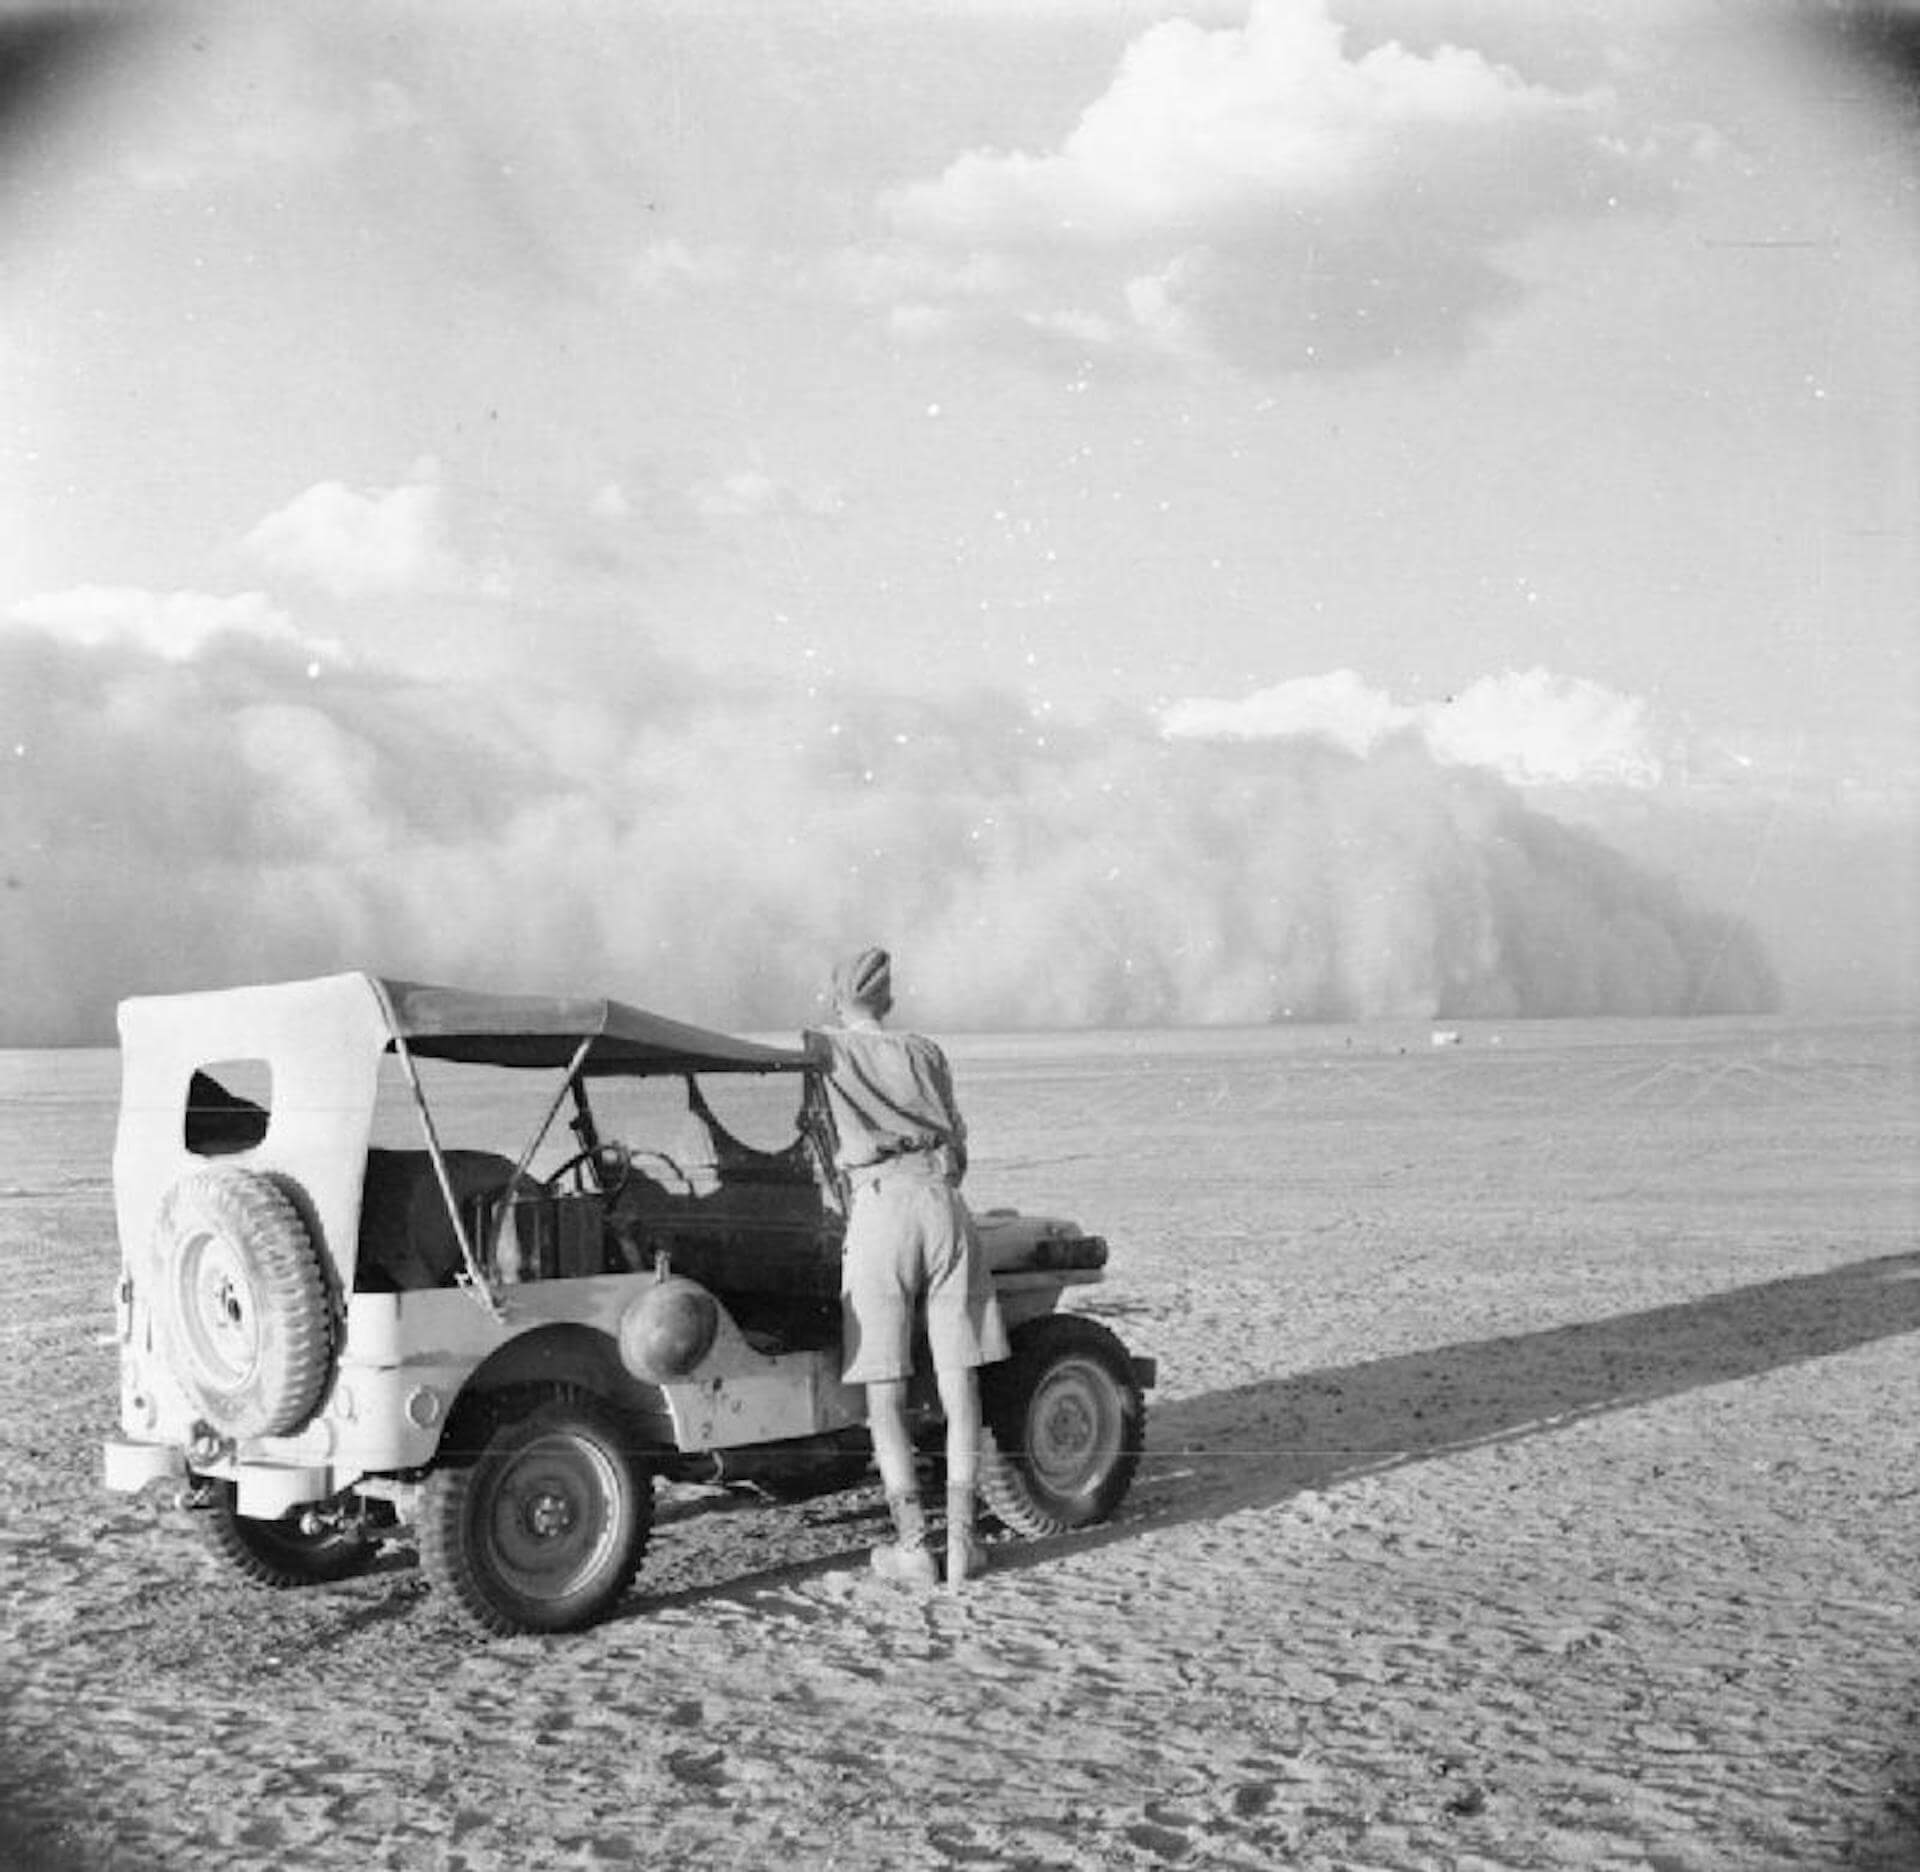 Long Range desert Group LRDG Octavo Ejército